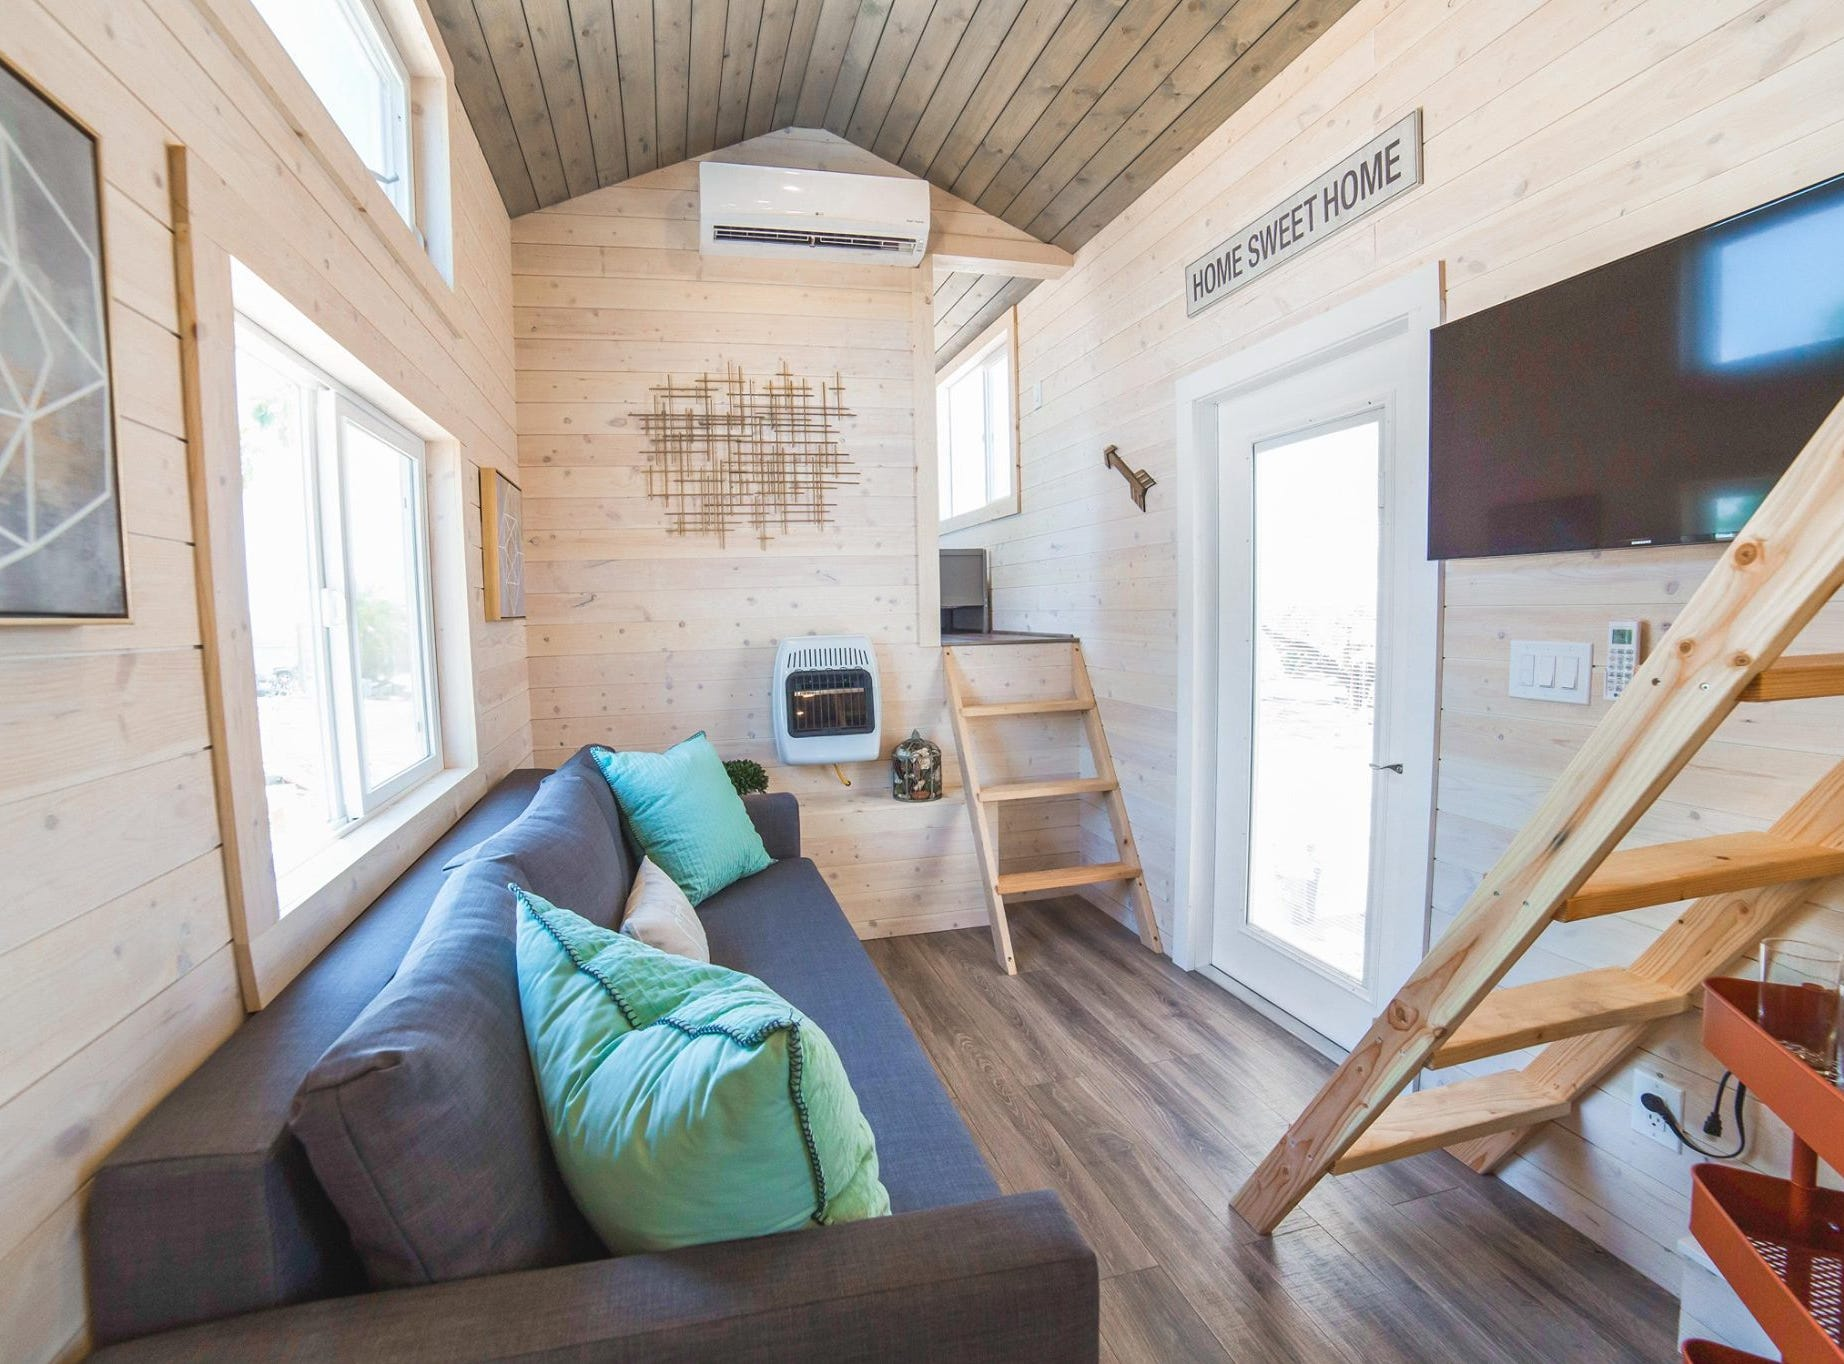 Another view of the tiny home's living room.